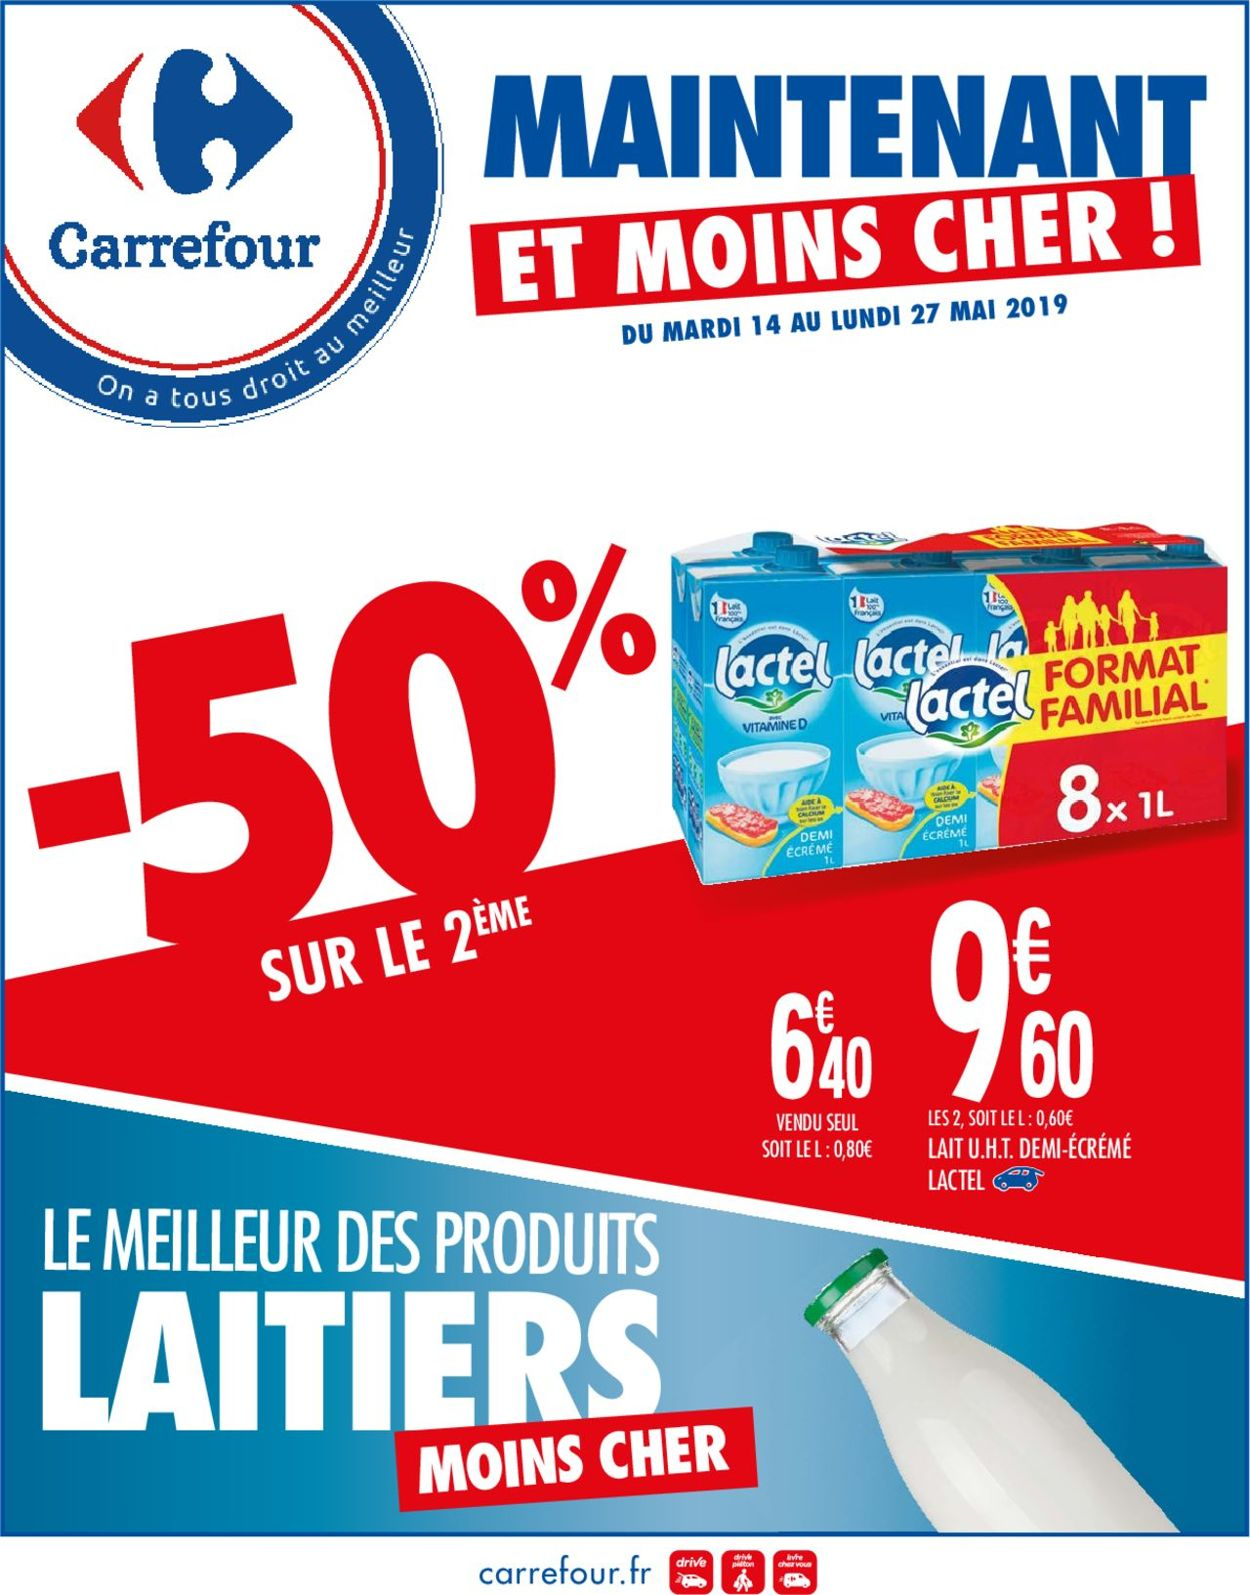 Carrefour Catalogue - 14.05-27.05.2019